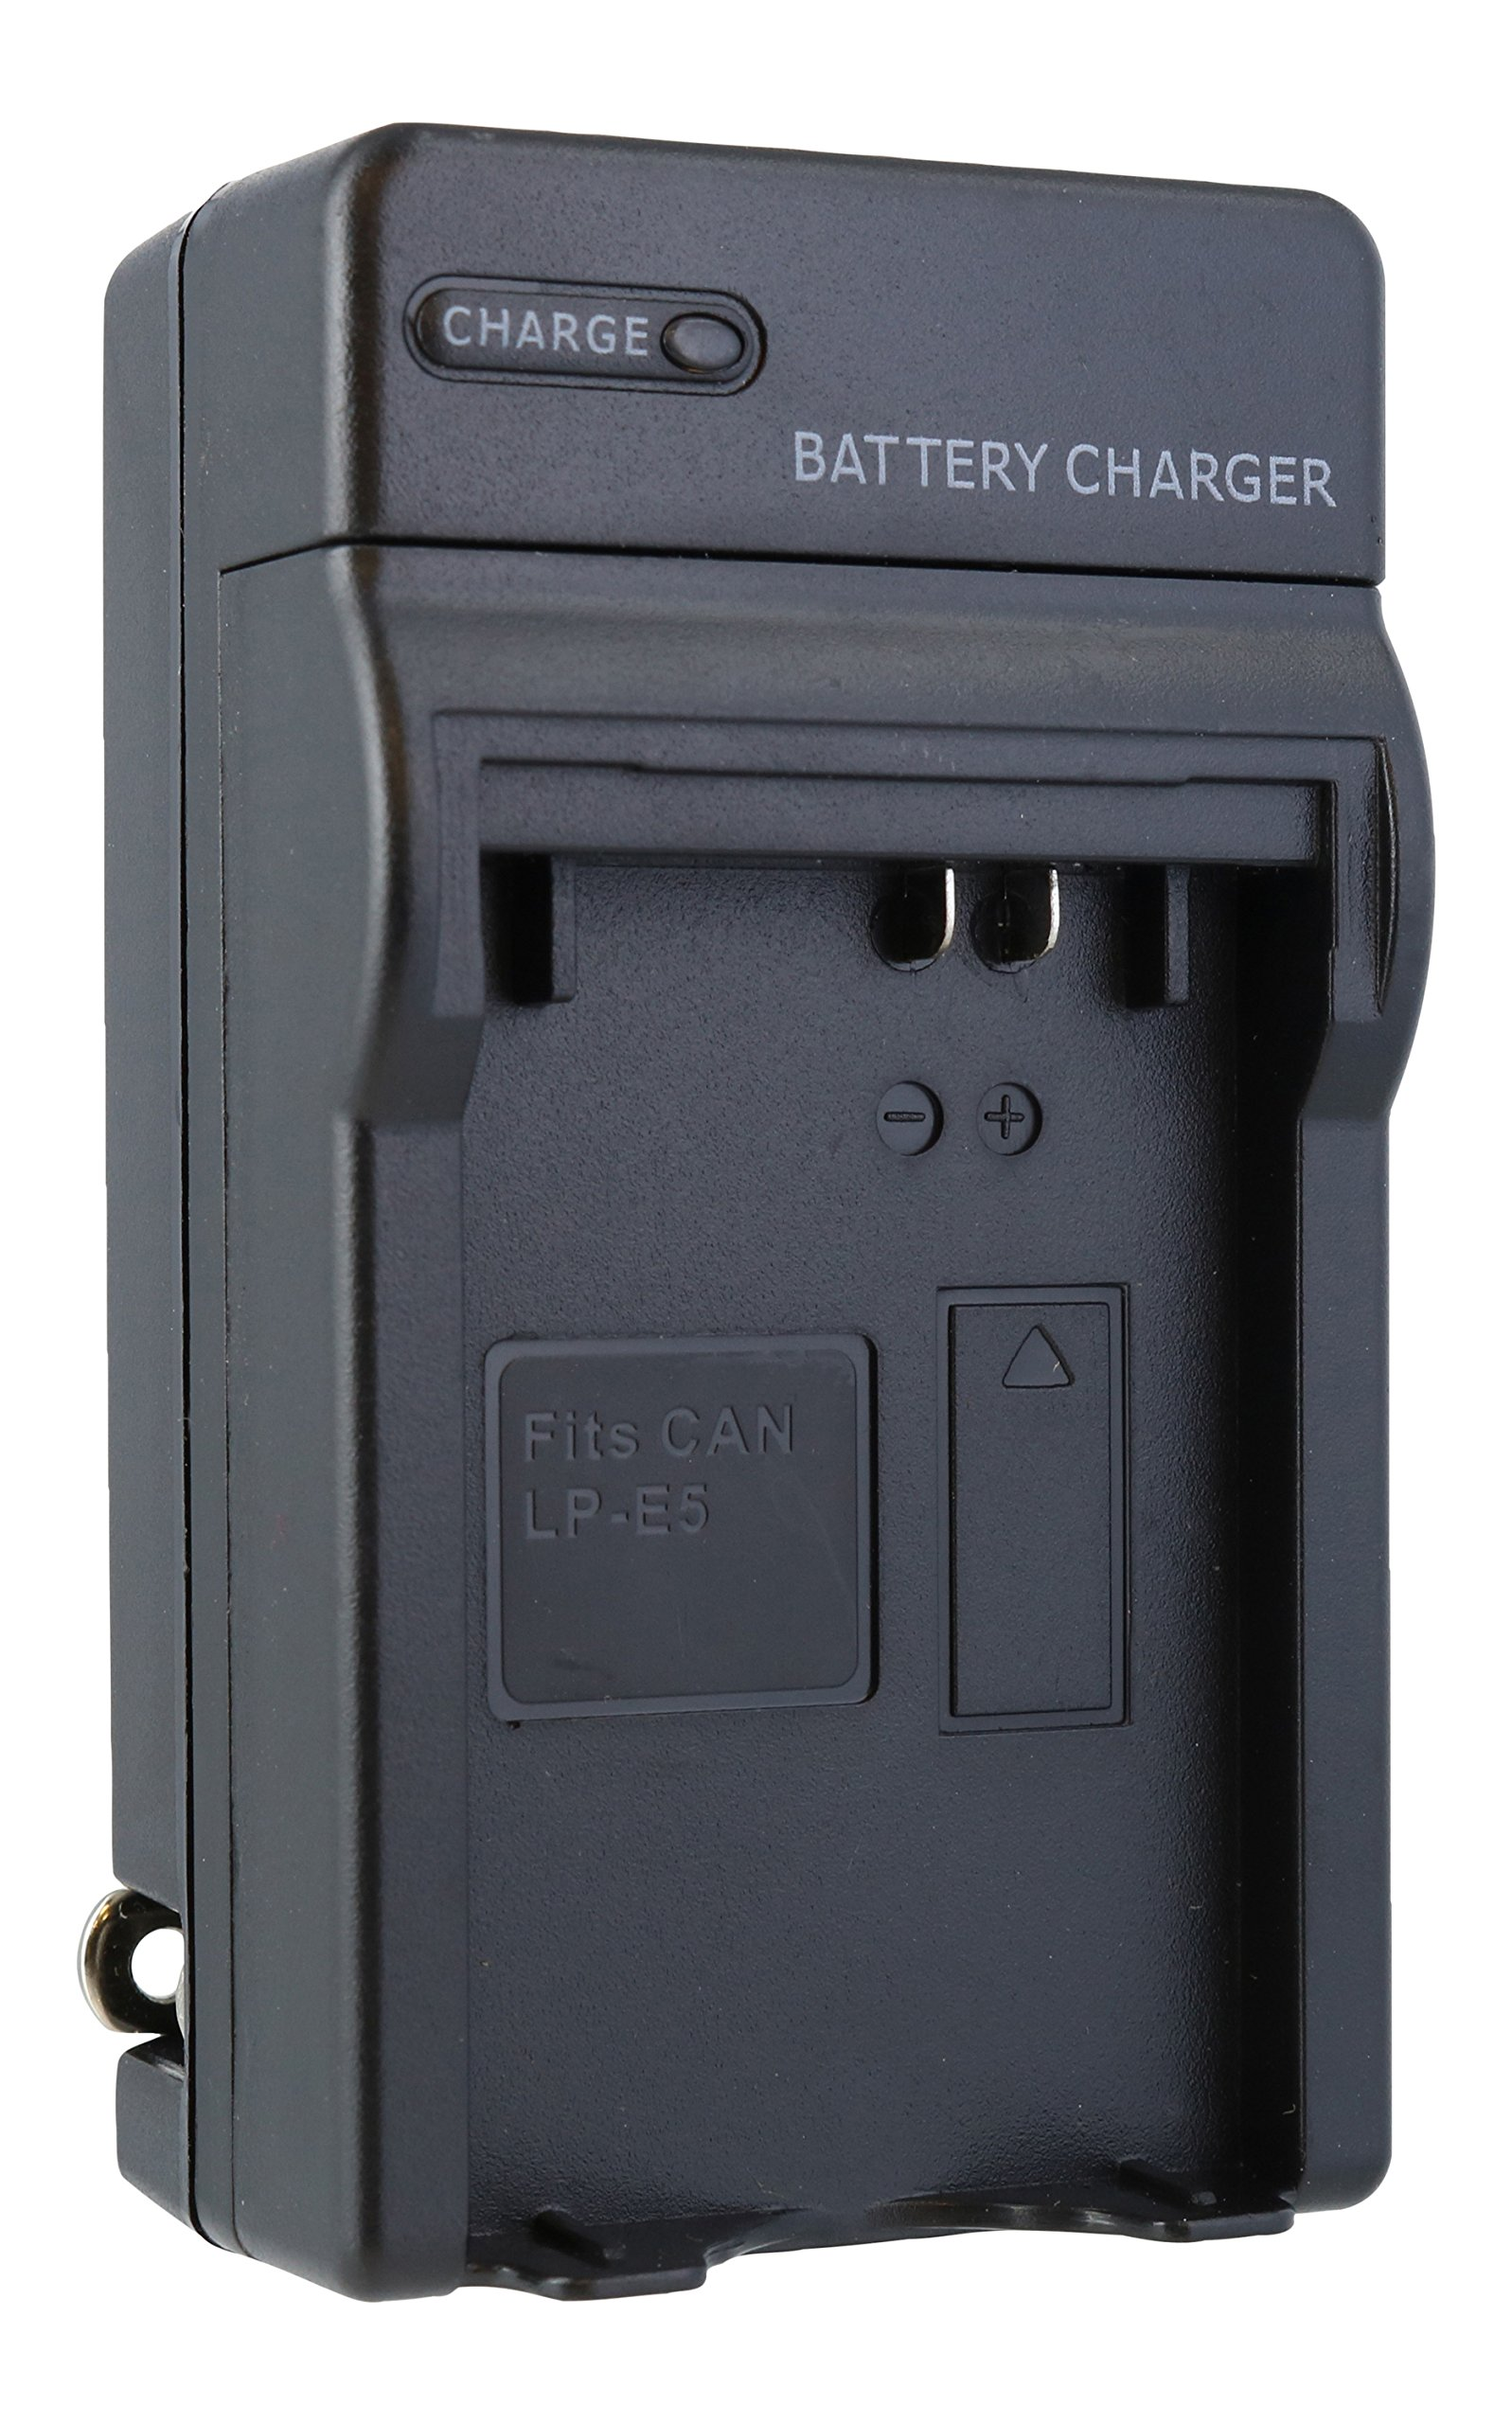 TechFuel Battery Charger Kit for Canon EOS Rebel T1i Camera - For Home, Car and Travel Use